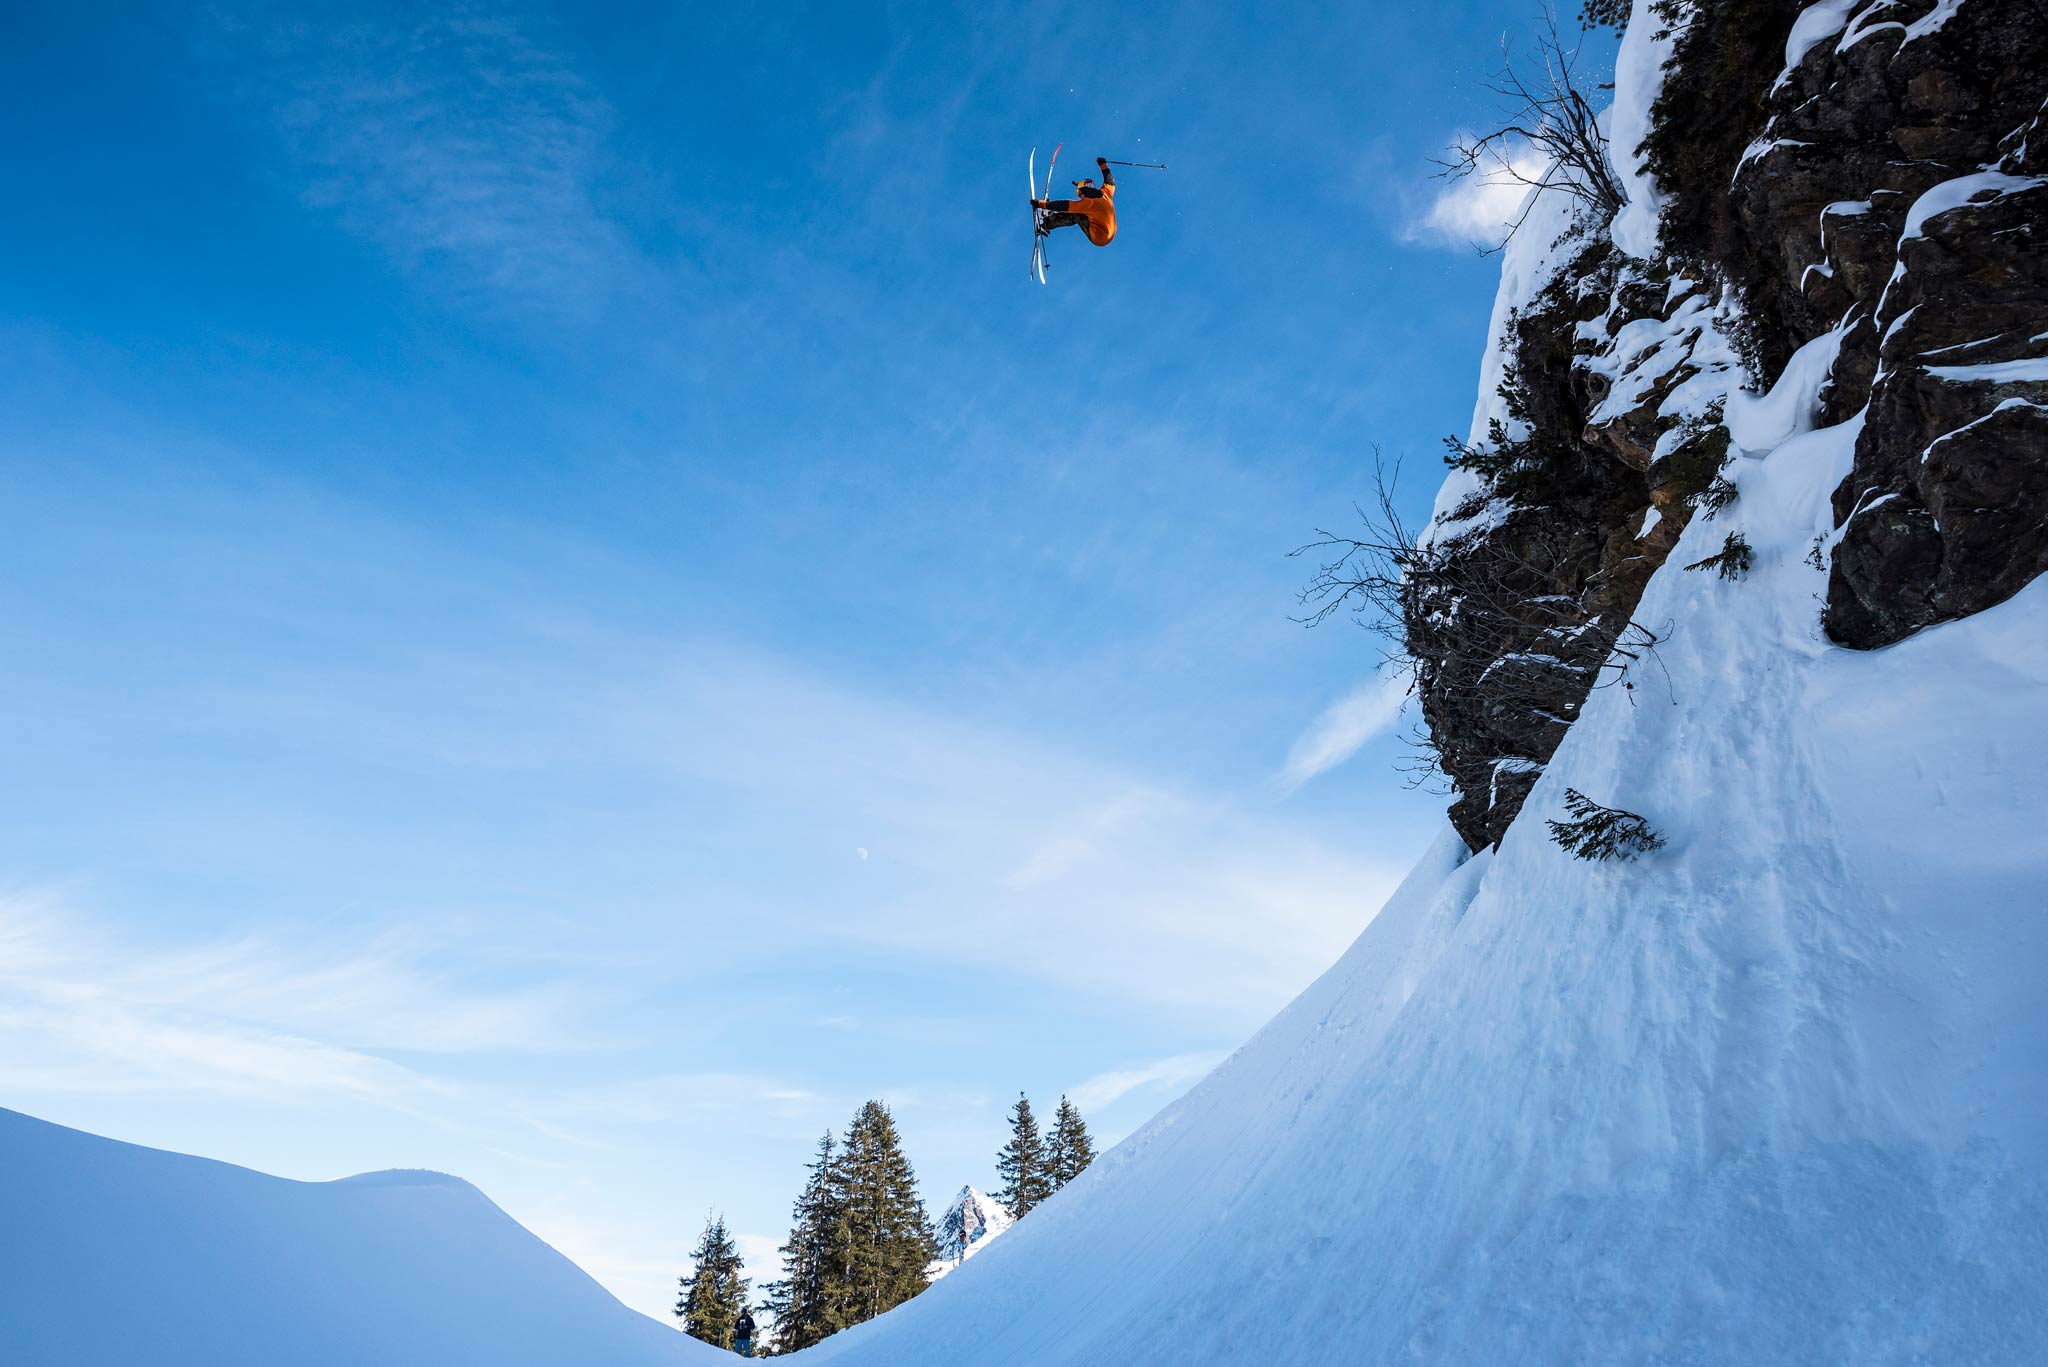 """121"" (Full Movie) - 2019 - Legs of Steel - Rider: Markus Eder - Foto: Pally Learmond"